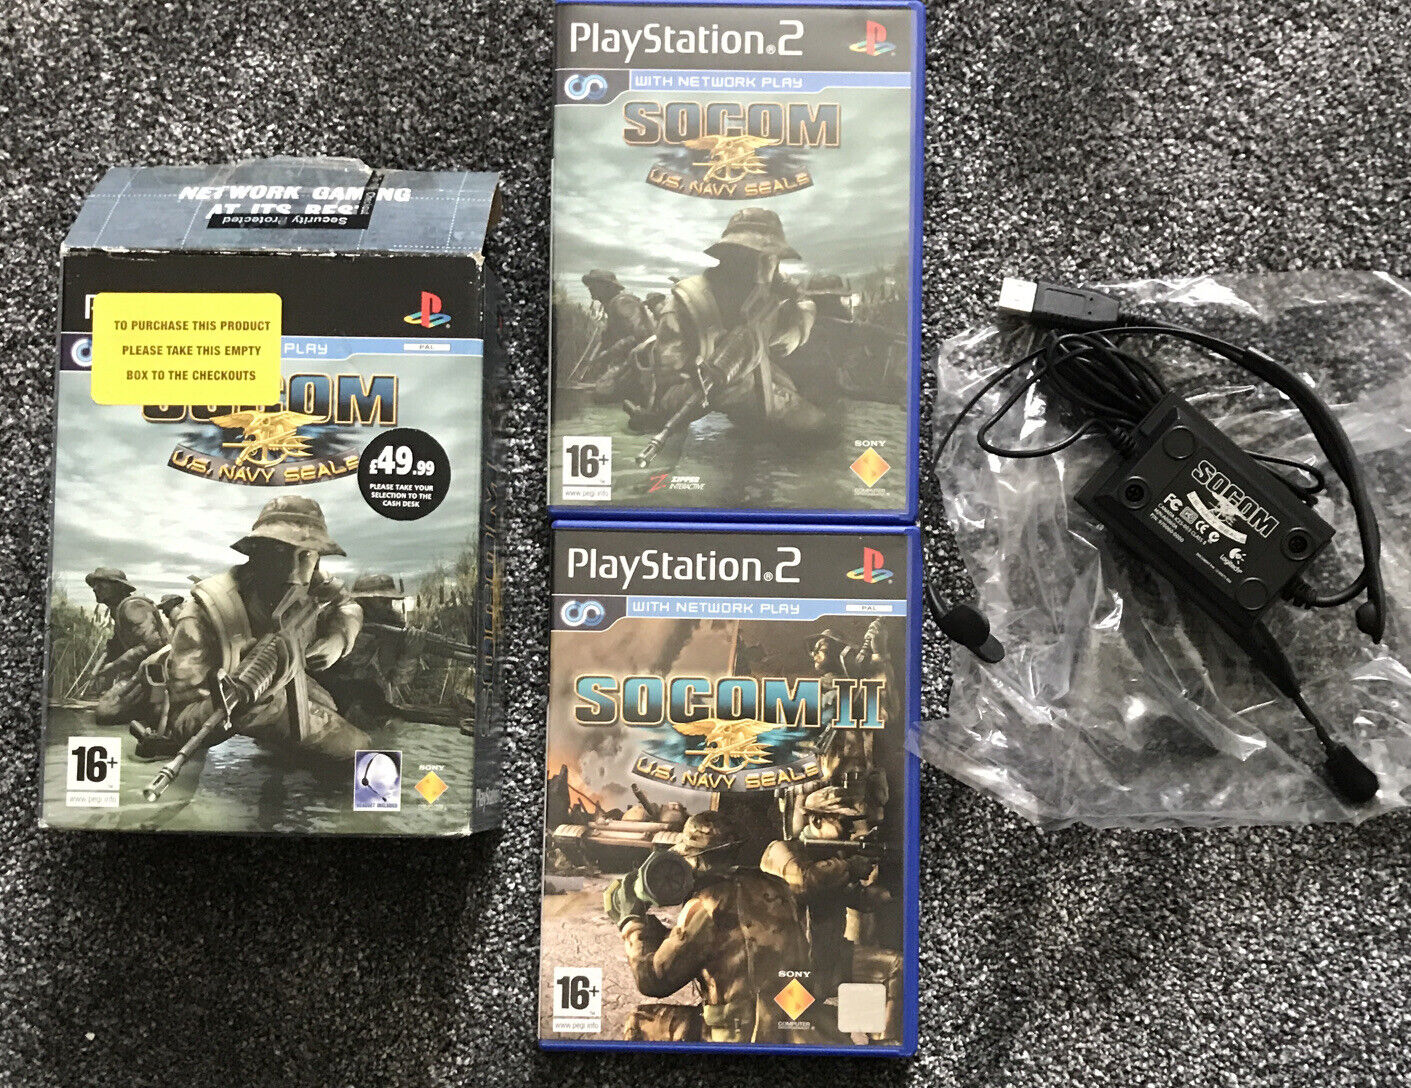 Playstation 2. PS2 Socom - U.S. Navy Seals 1 + 2 Bundle Comes with Boxed Headset